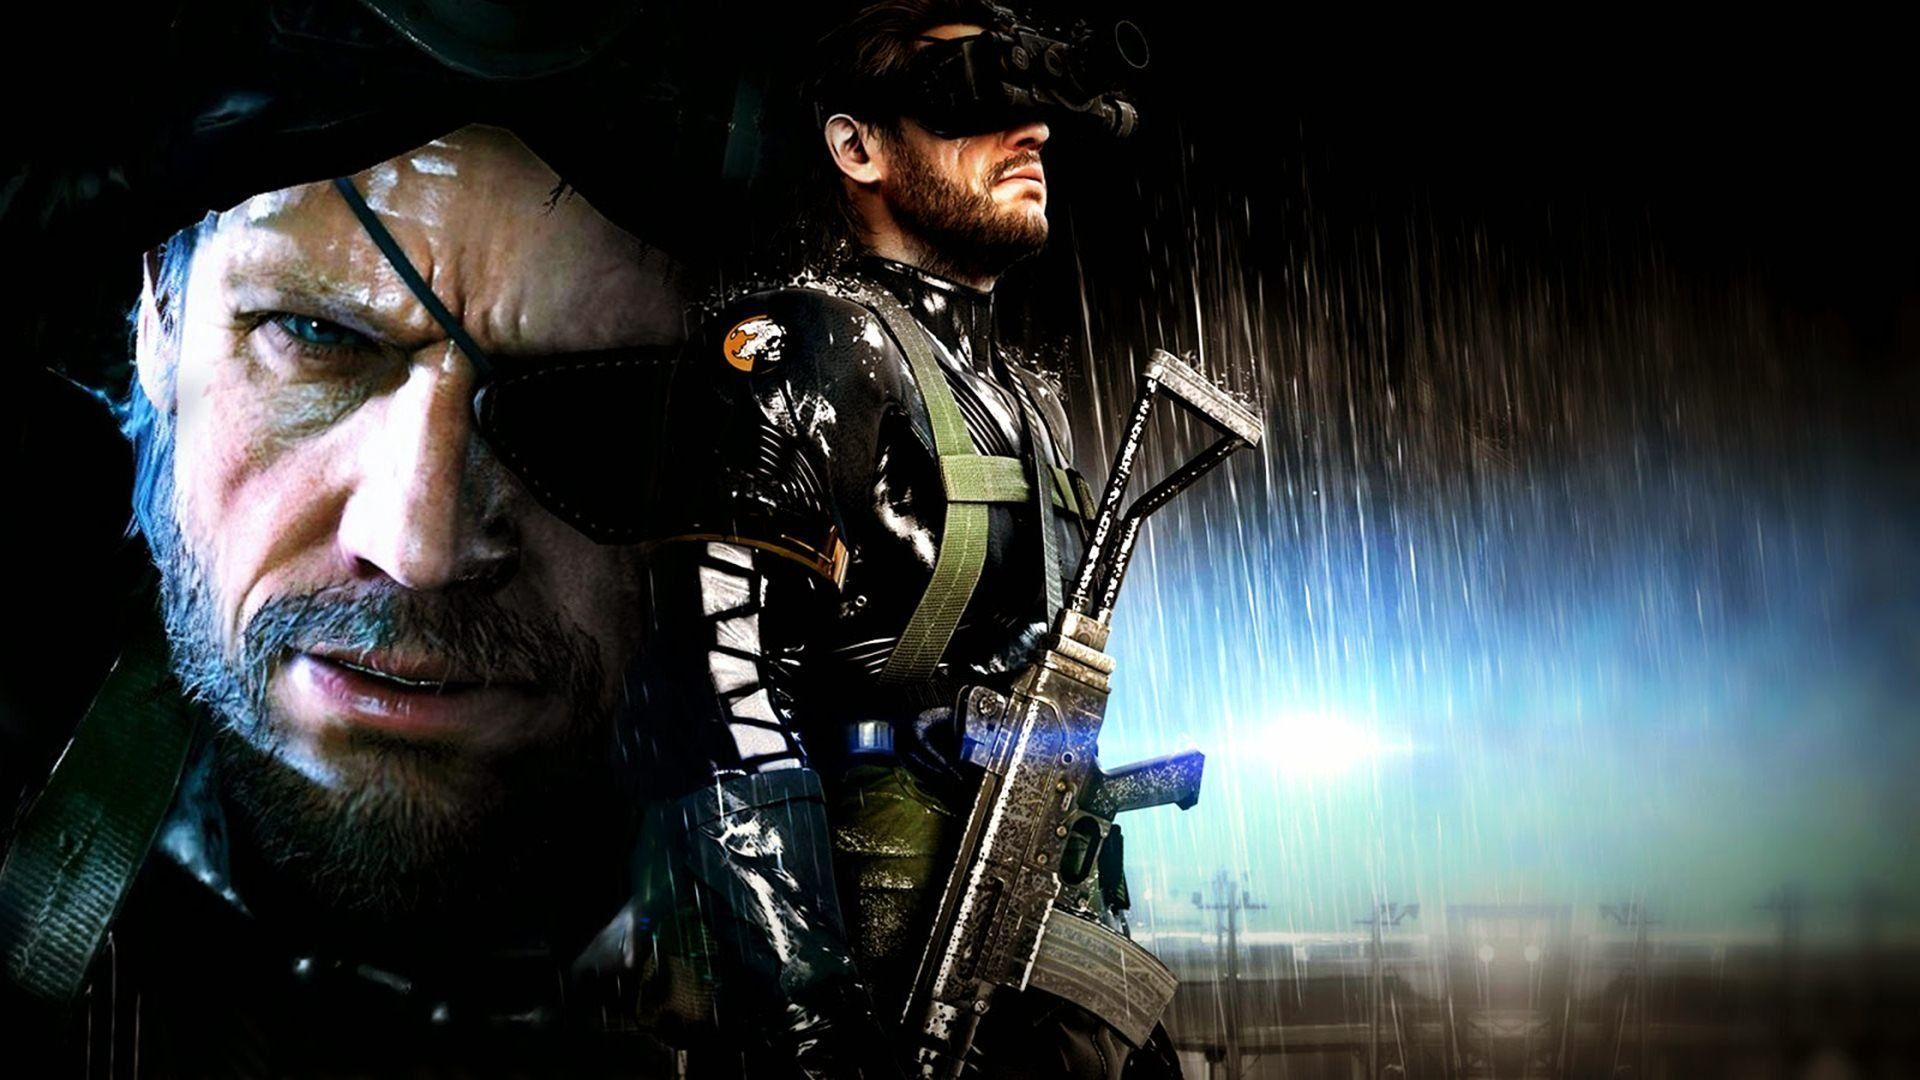 METAL GEAR SOLID Phantom Pain shooter action adventure stealth (3 ...